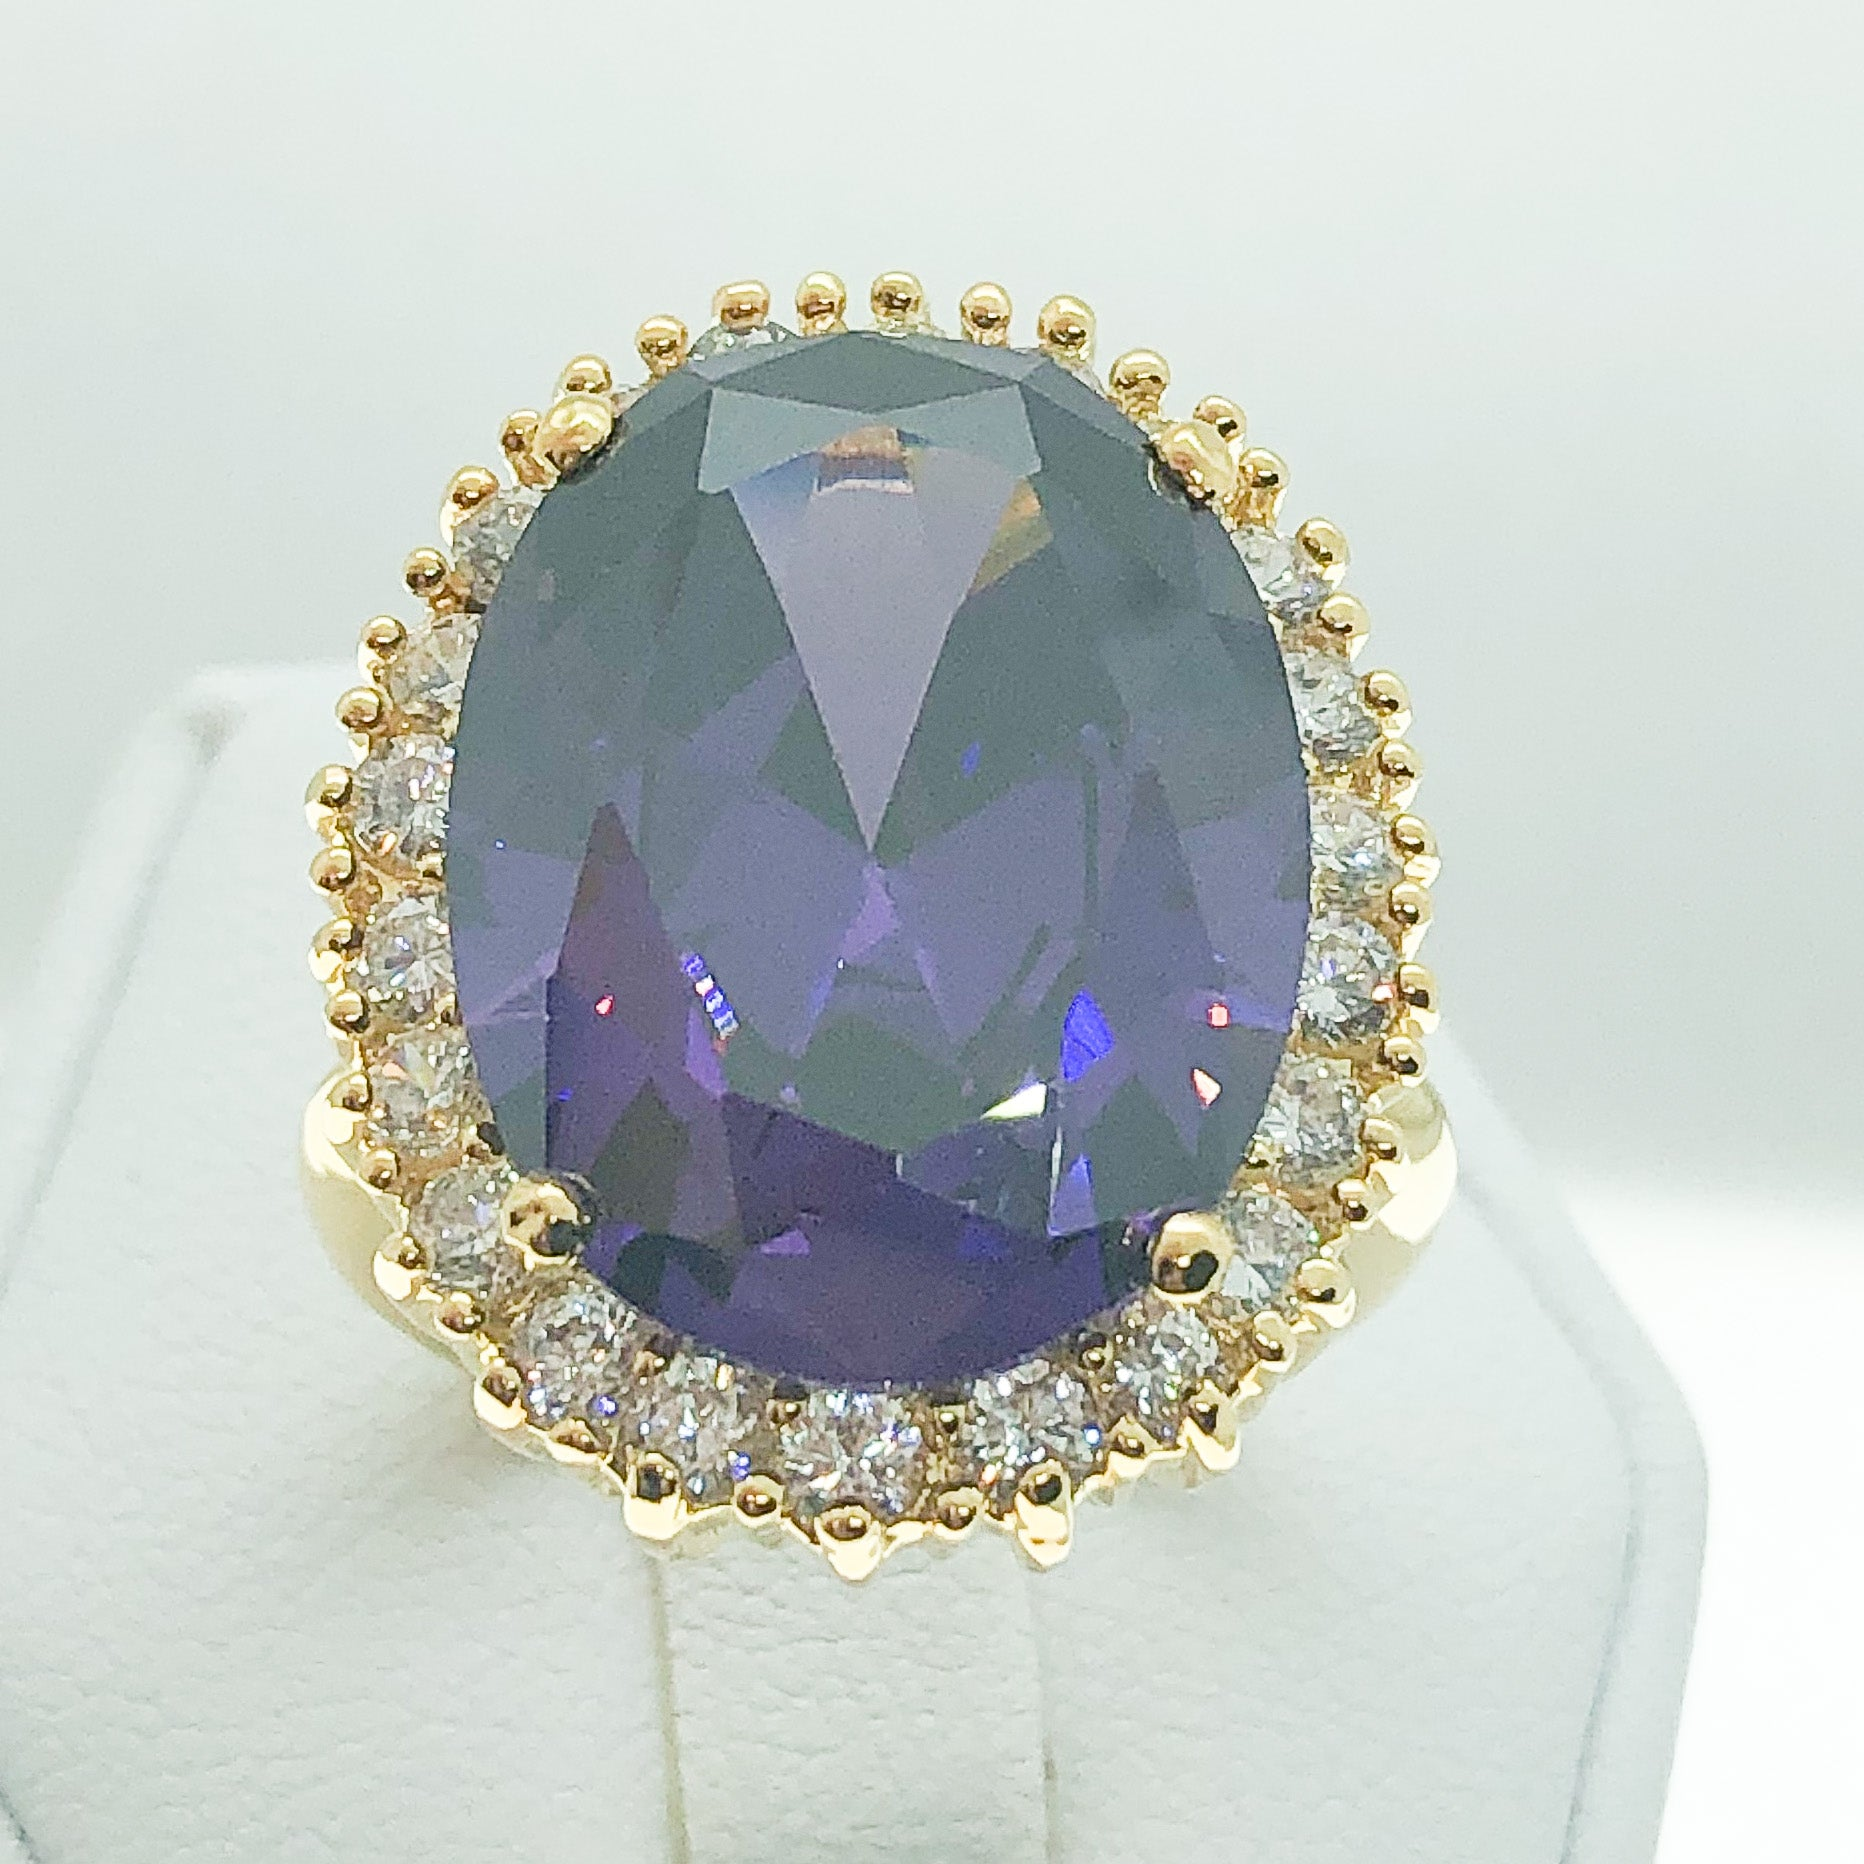 ID:R1567-1 Women Fashion Jewelry 18K Yellow Gold GF Graceful Big Purple Crystal Cocktail Ring With Diamonique Accent